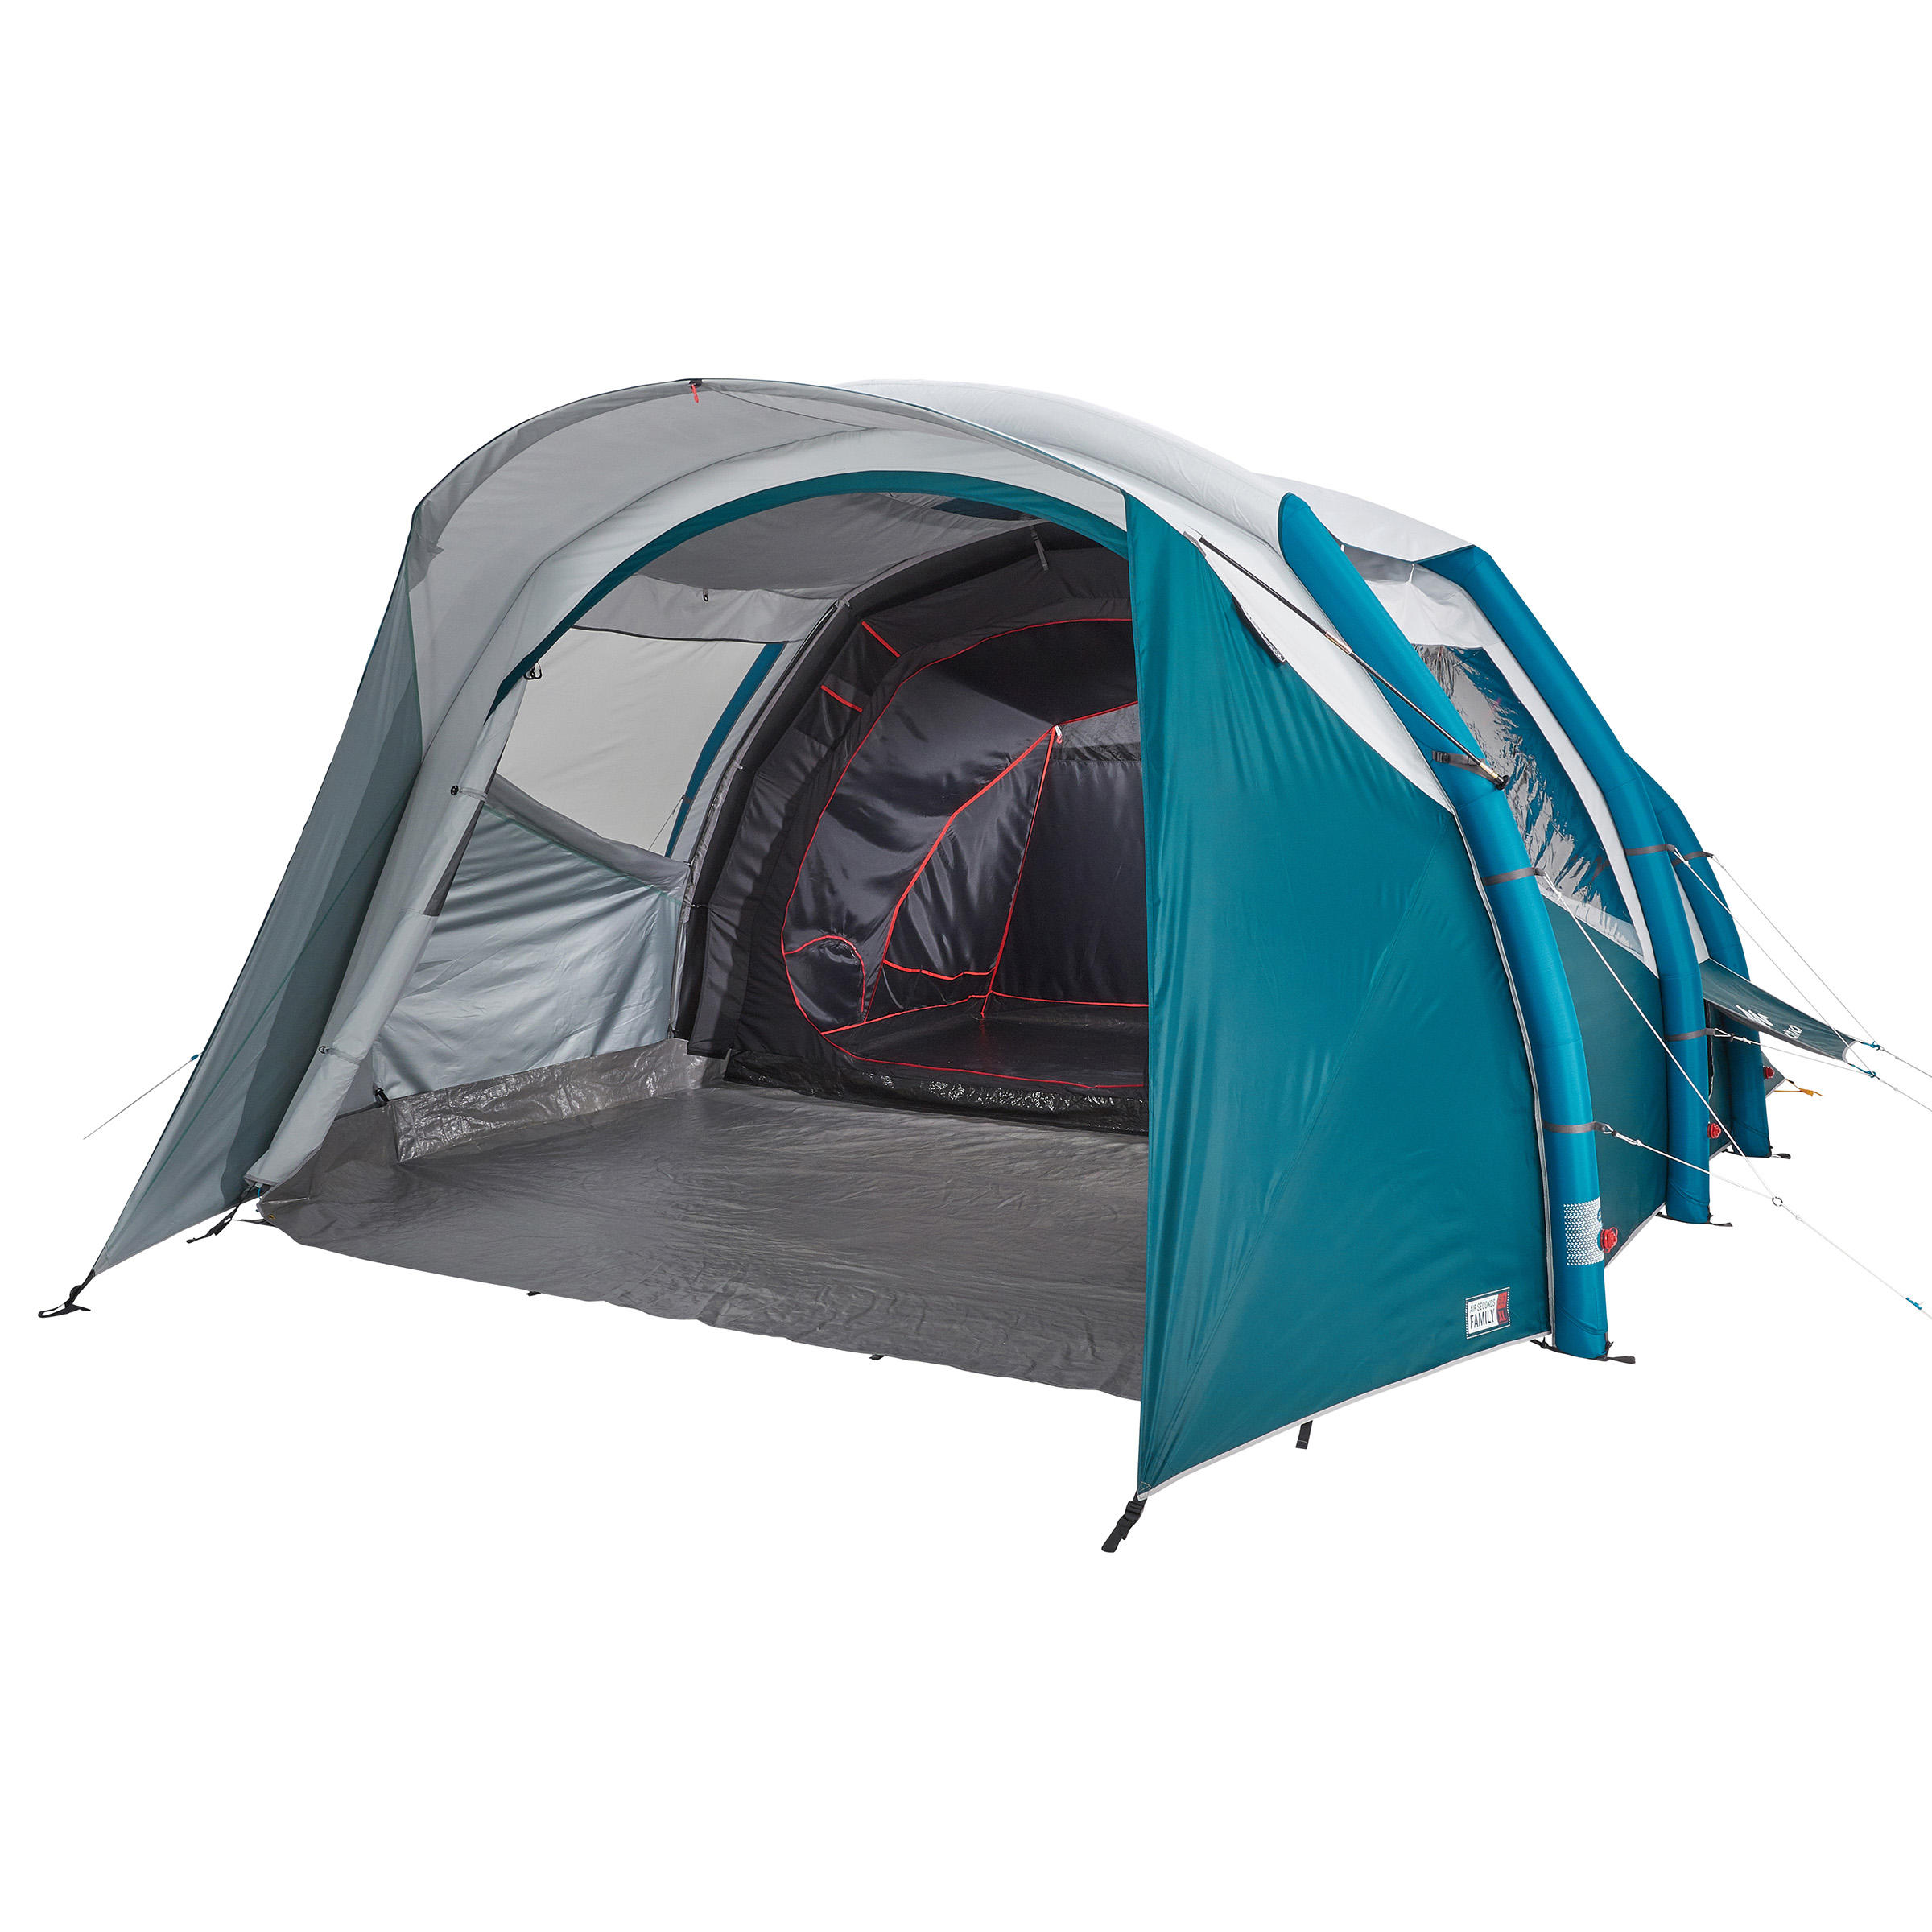 Opblaasbare tent - Air Seconds 5.2 XL